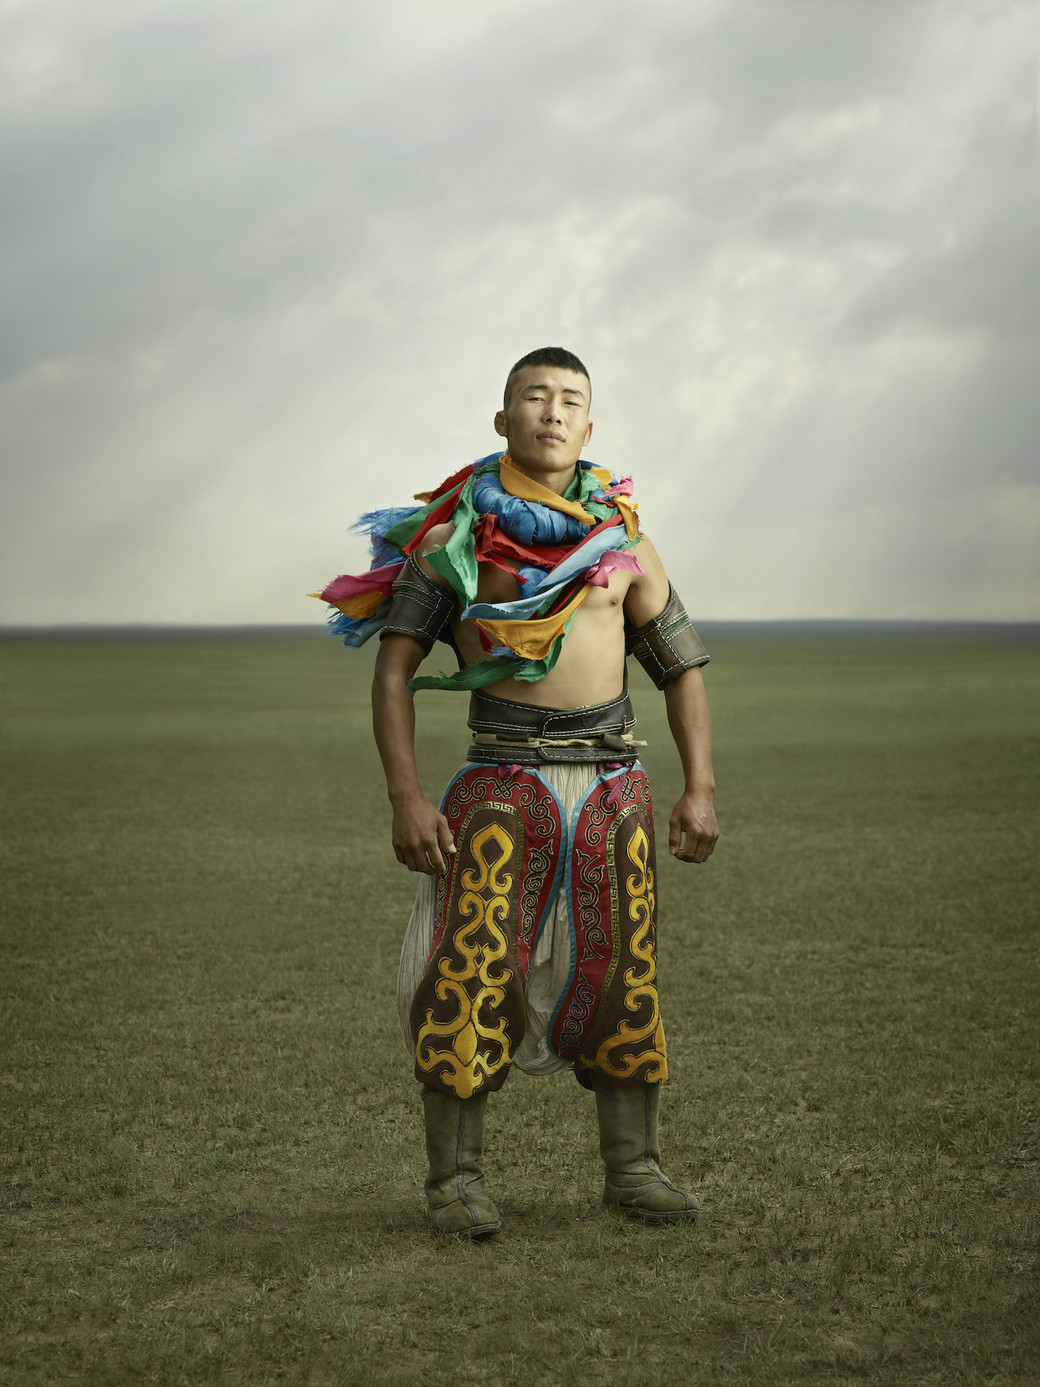 Mongolia wrestling pants portrait young man